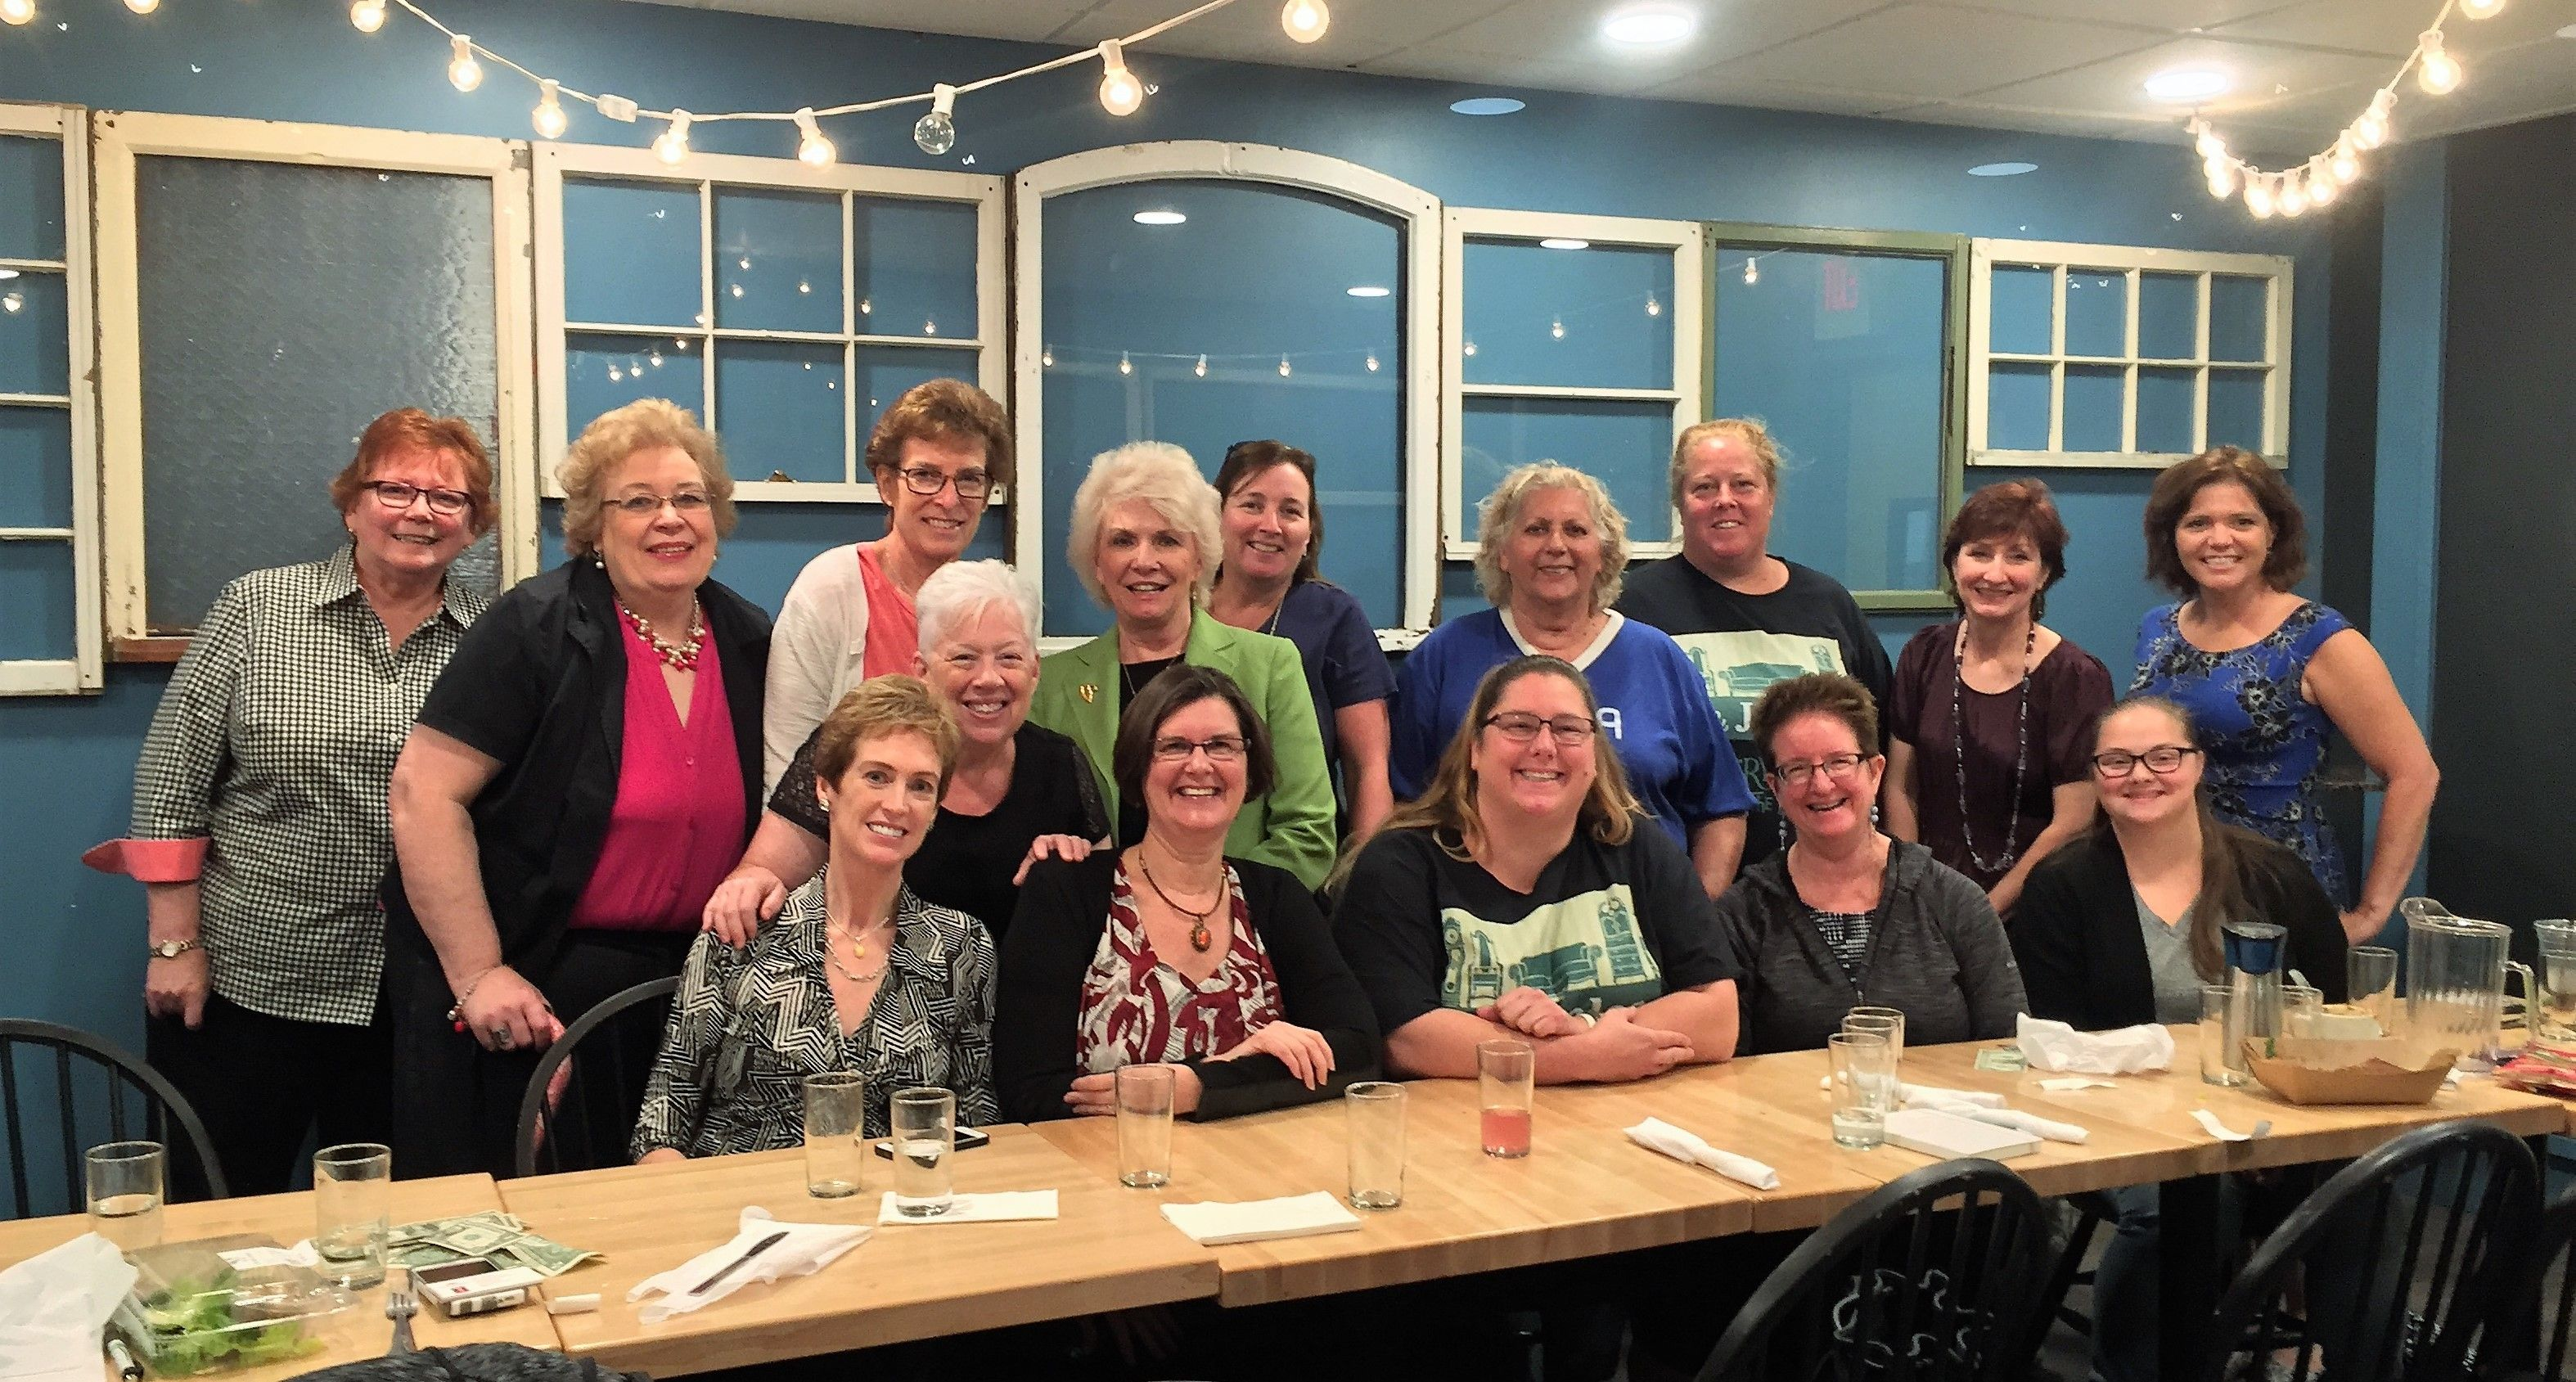 Women's Independent Networking Group for Success